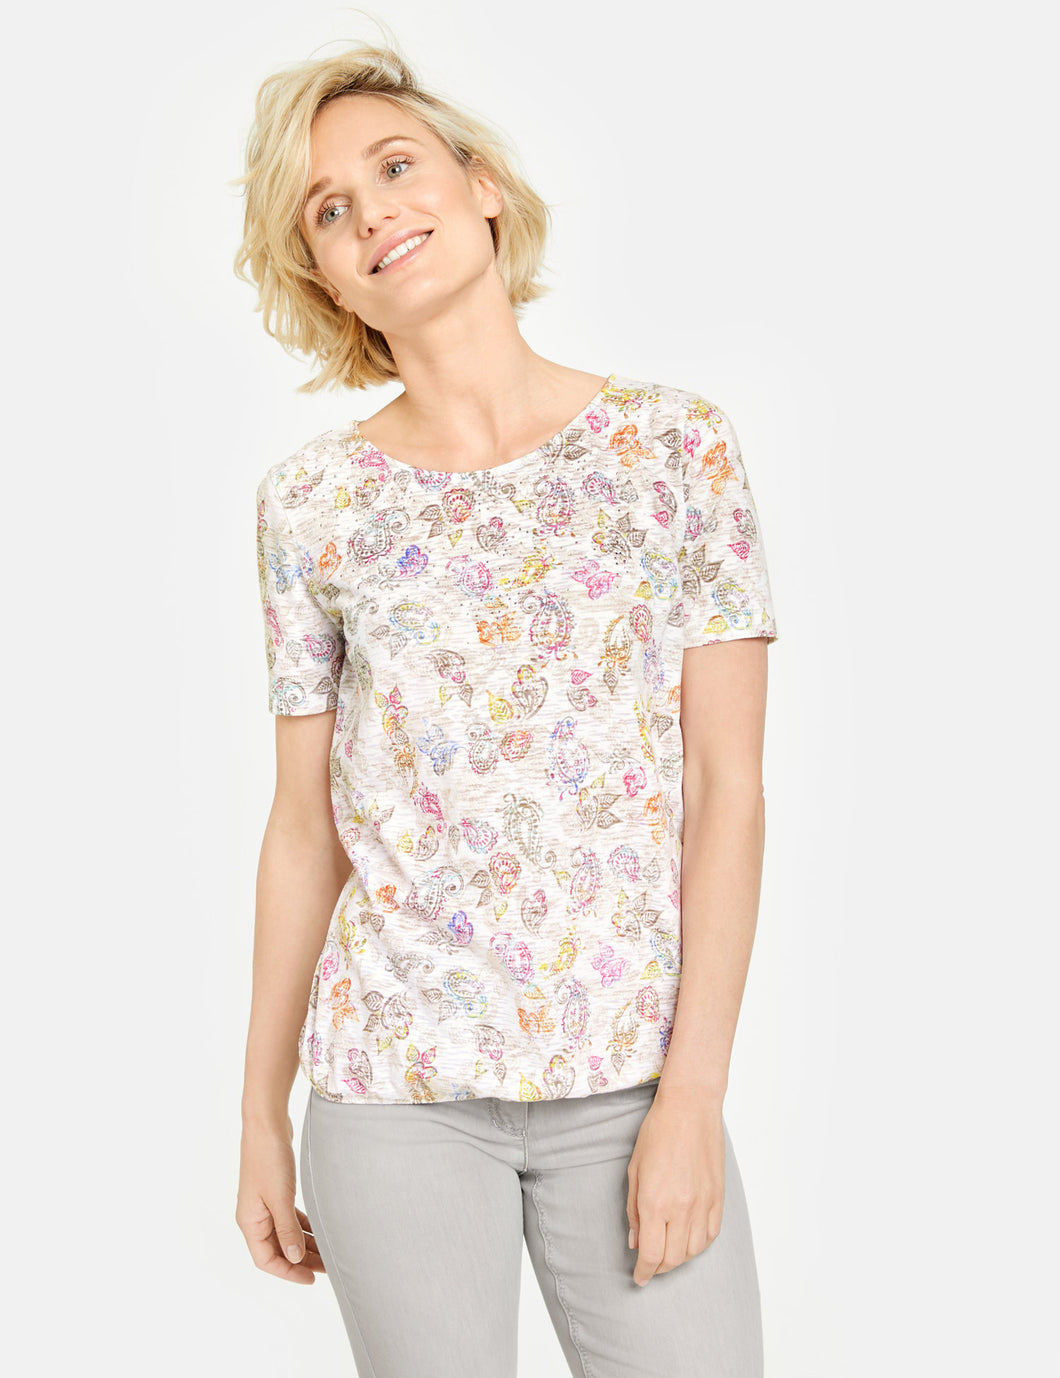 T-shirt with Print - ELIZABETH SCHINDLER